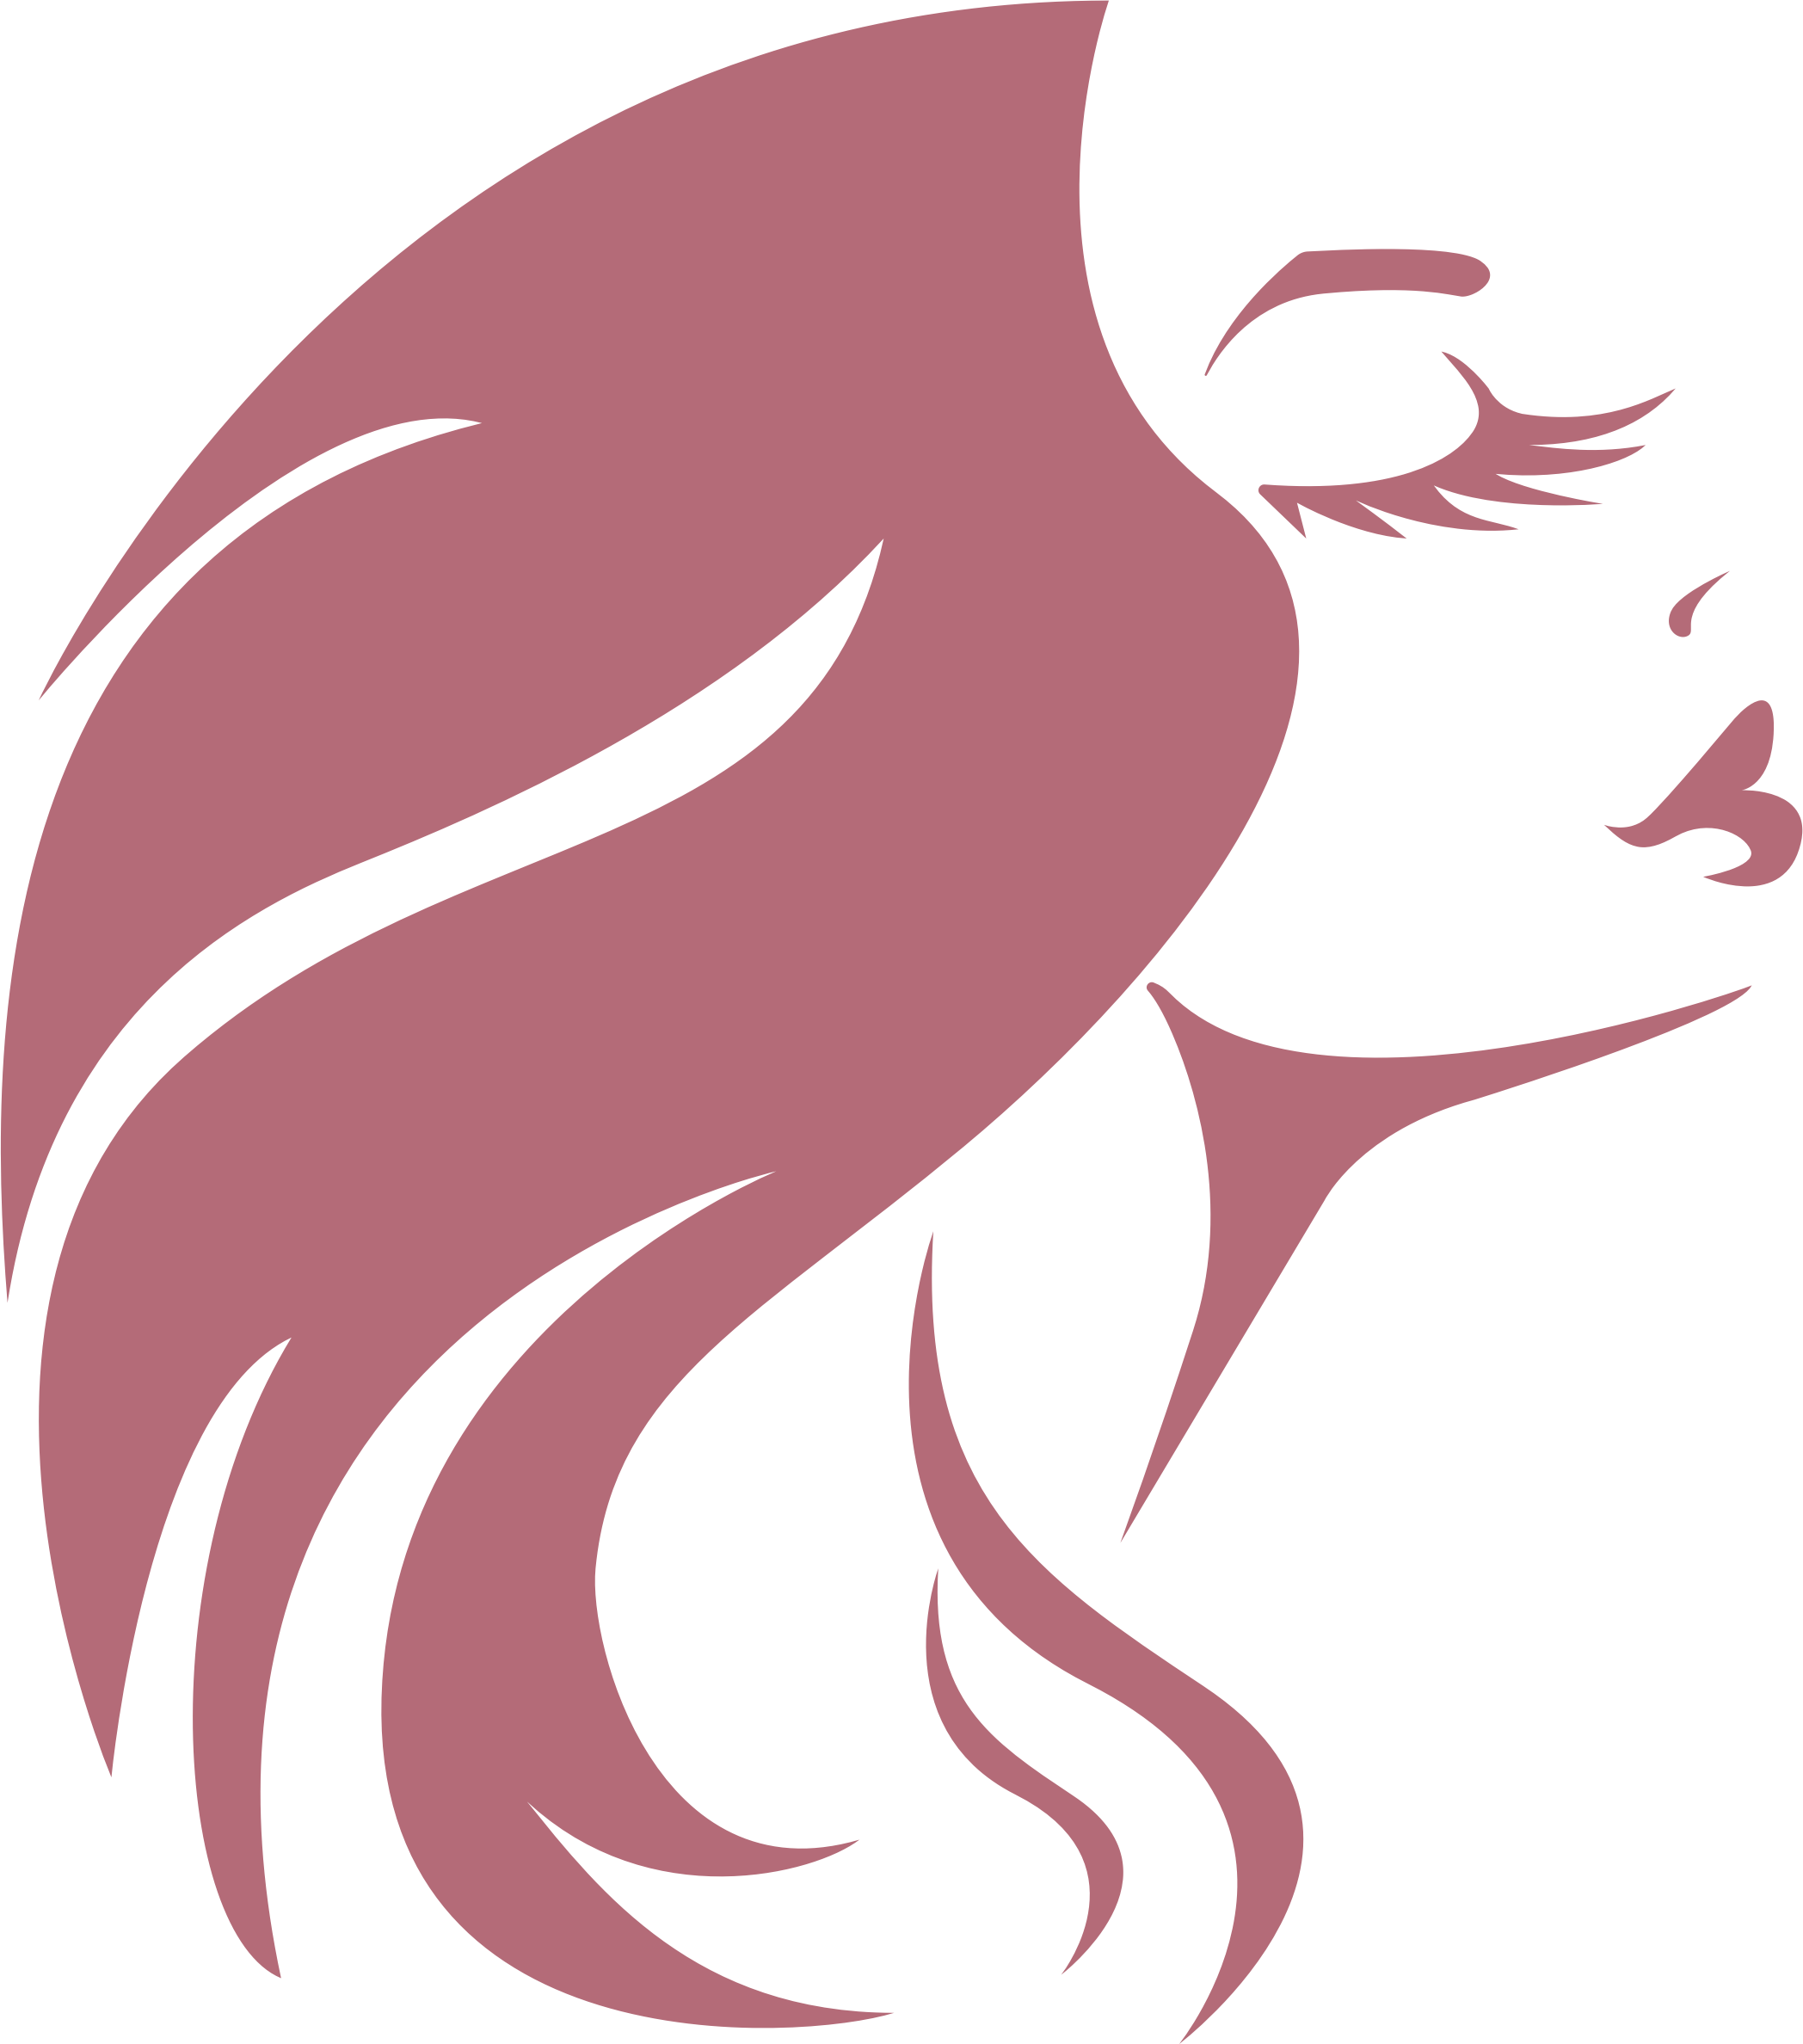 Eyelashes clipart png. Woman with big image